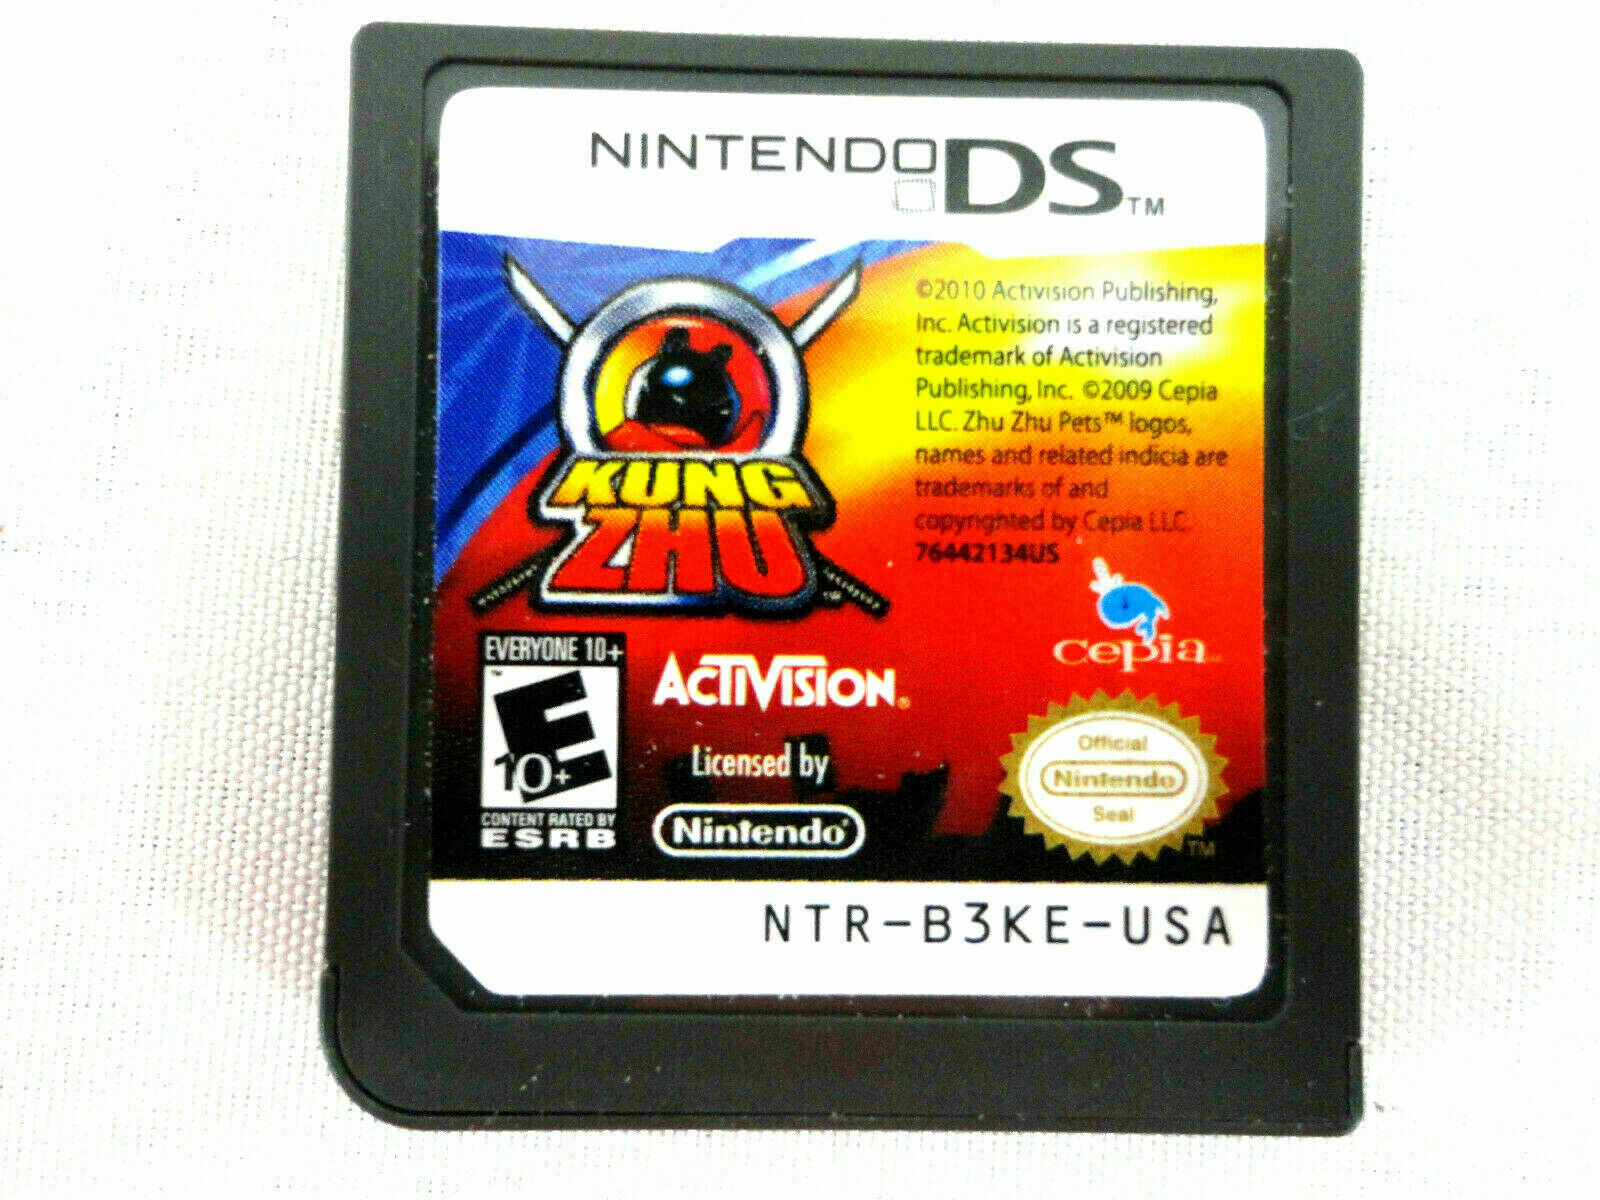 Primary image for New! Kung Zhu 2010 (Nintendo DS) FREE plastic case works w/ 3DS 2DS DSi DS XL